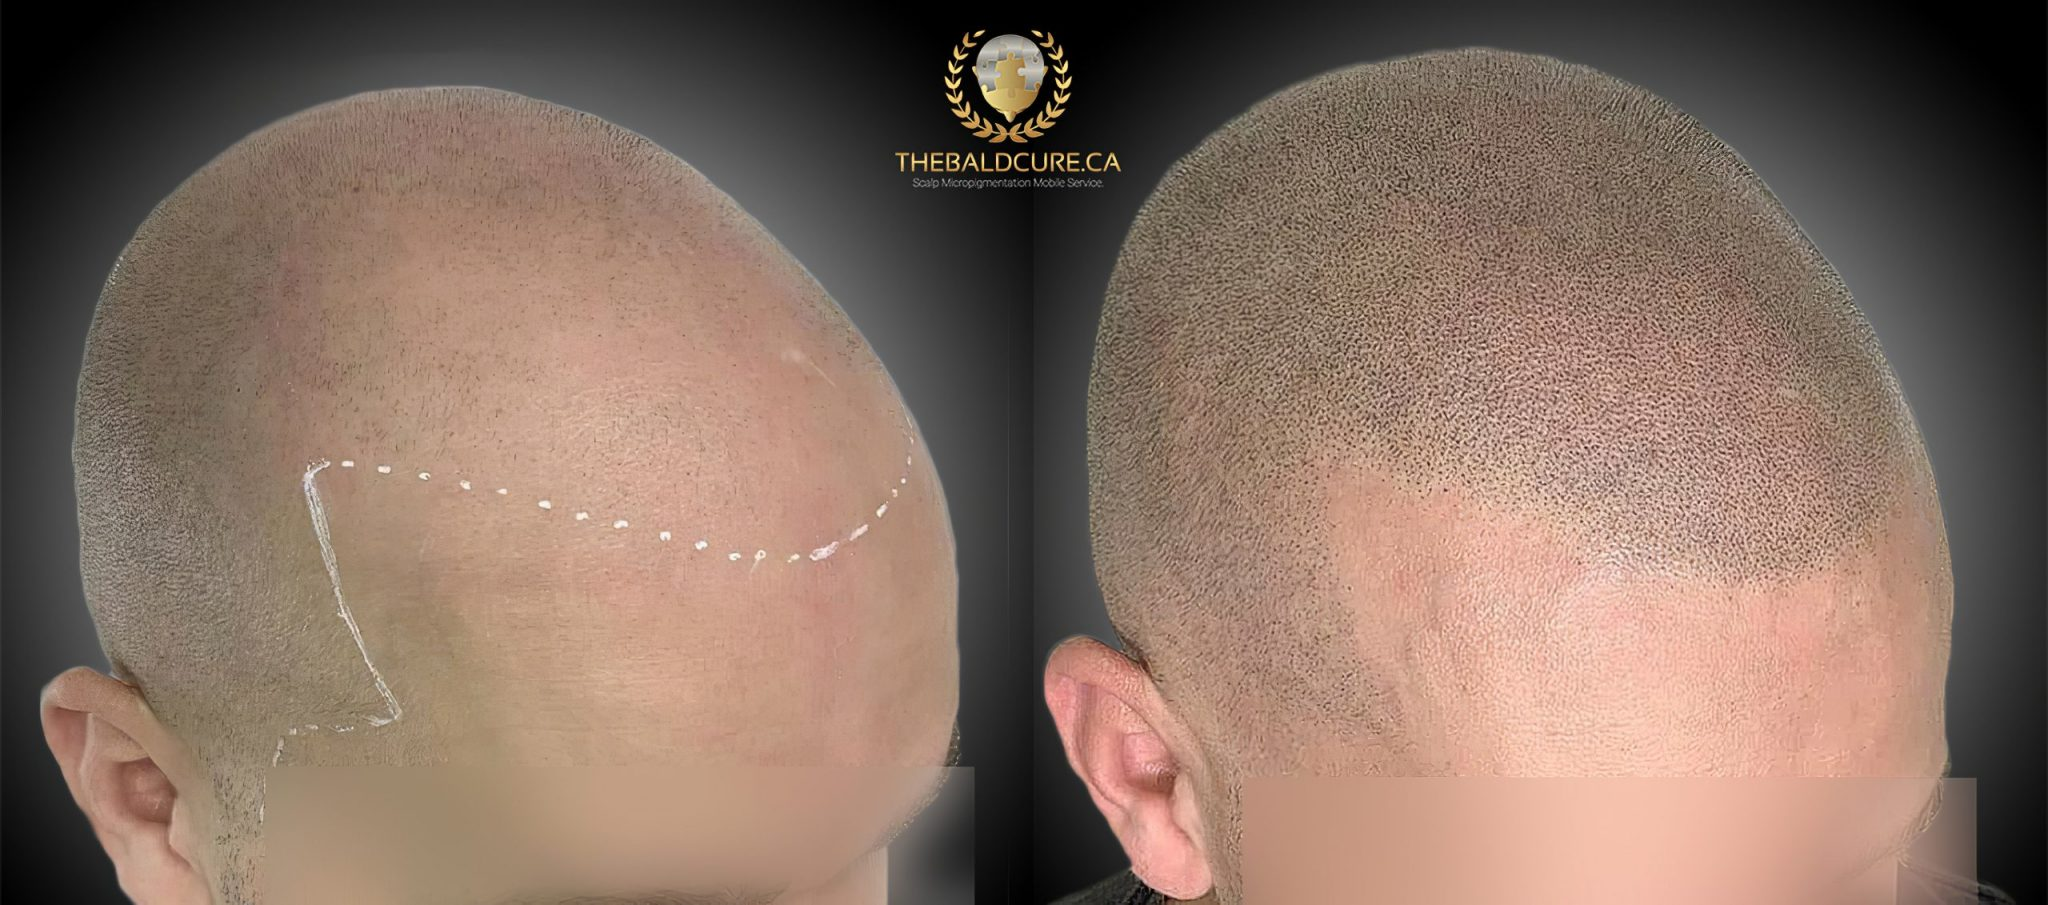 The Bald Cure Mobile Service In The Comfort Of Your Home We Beat Any Price 1-high-res-1-scaled Home